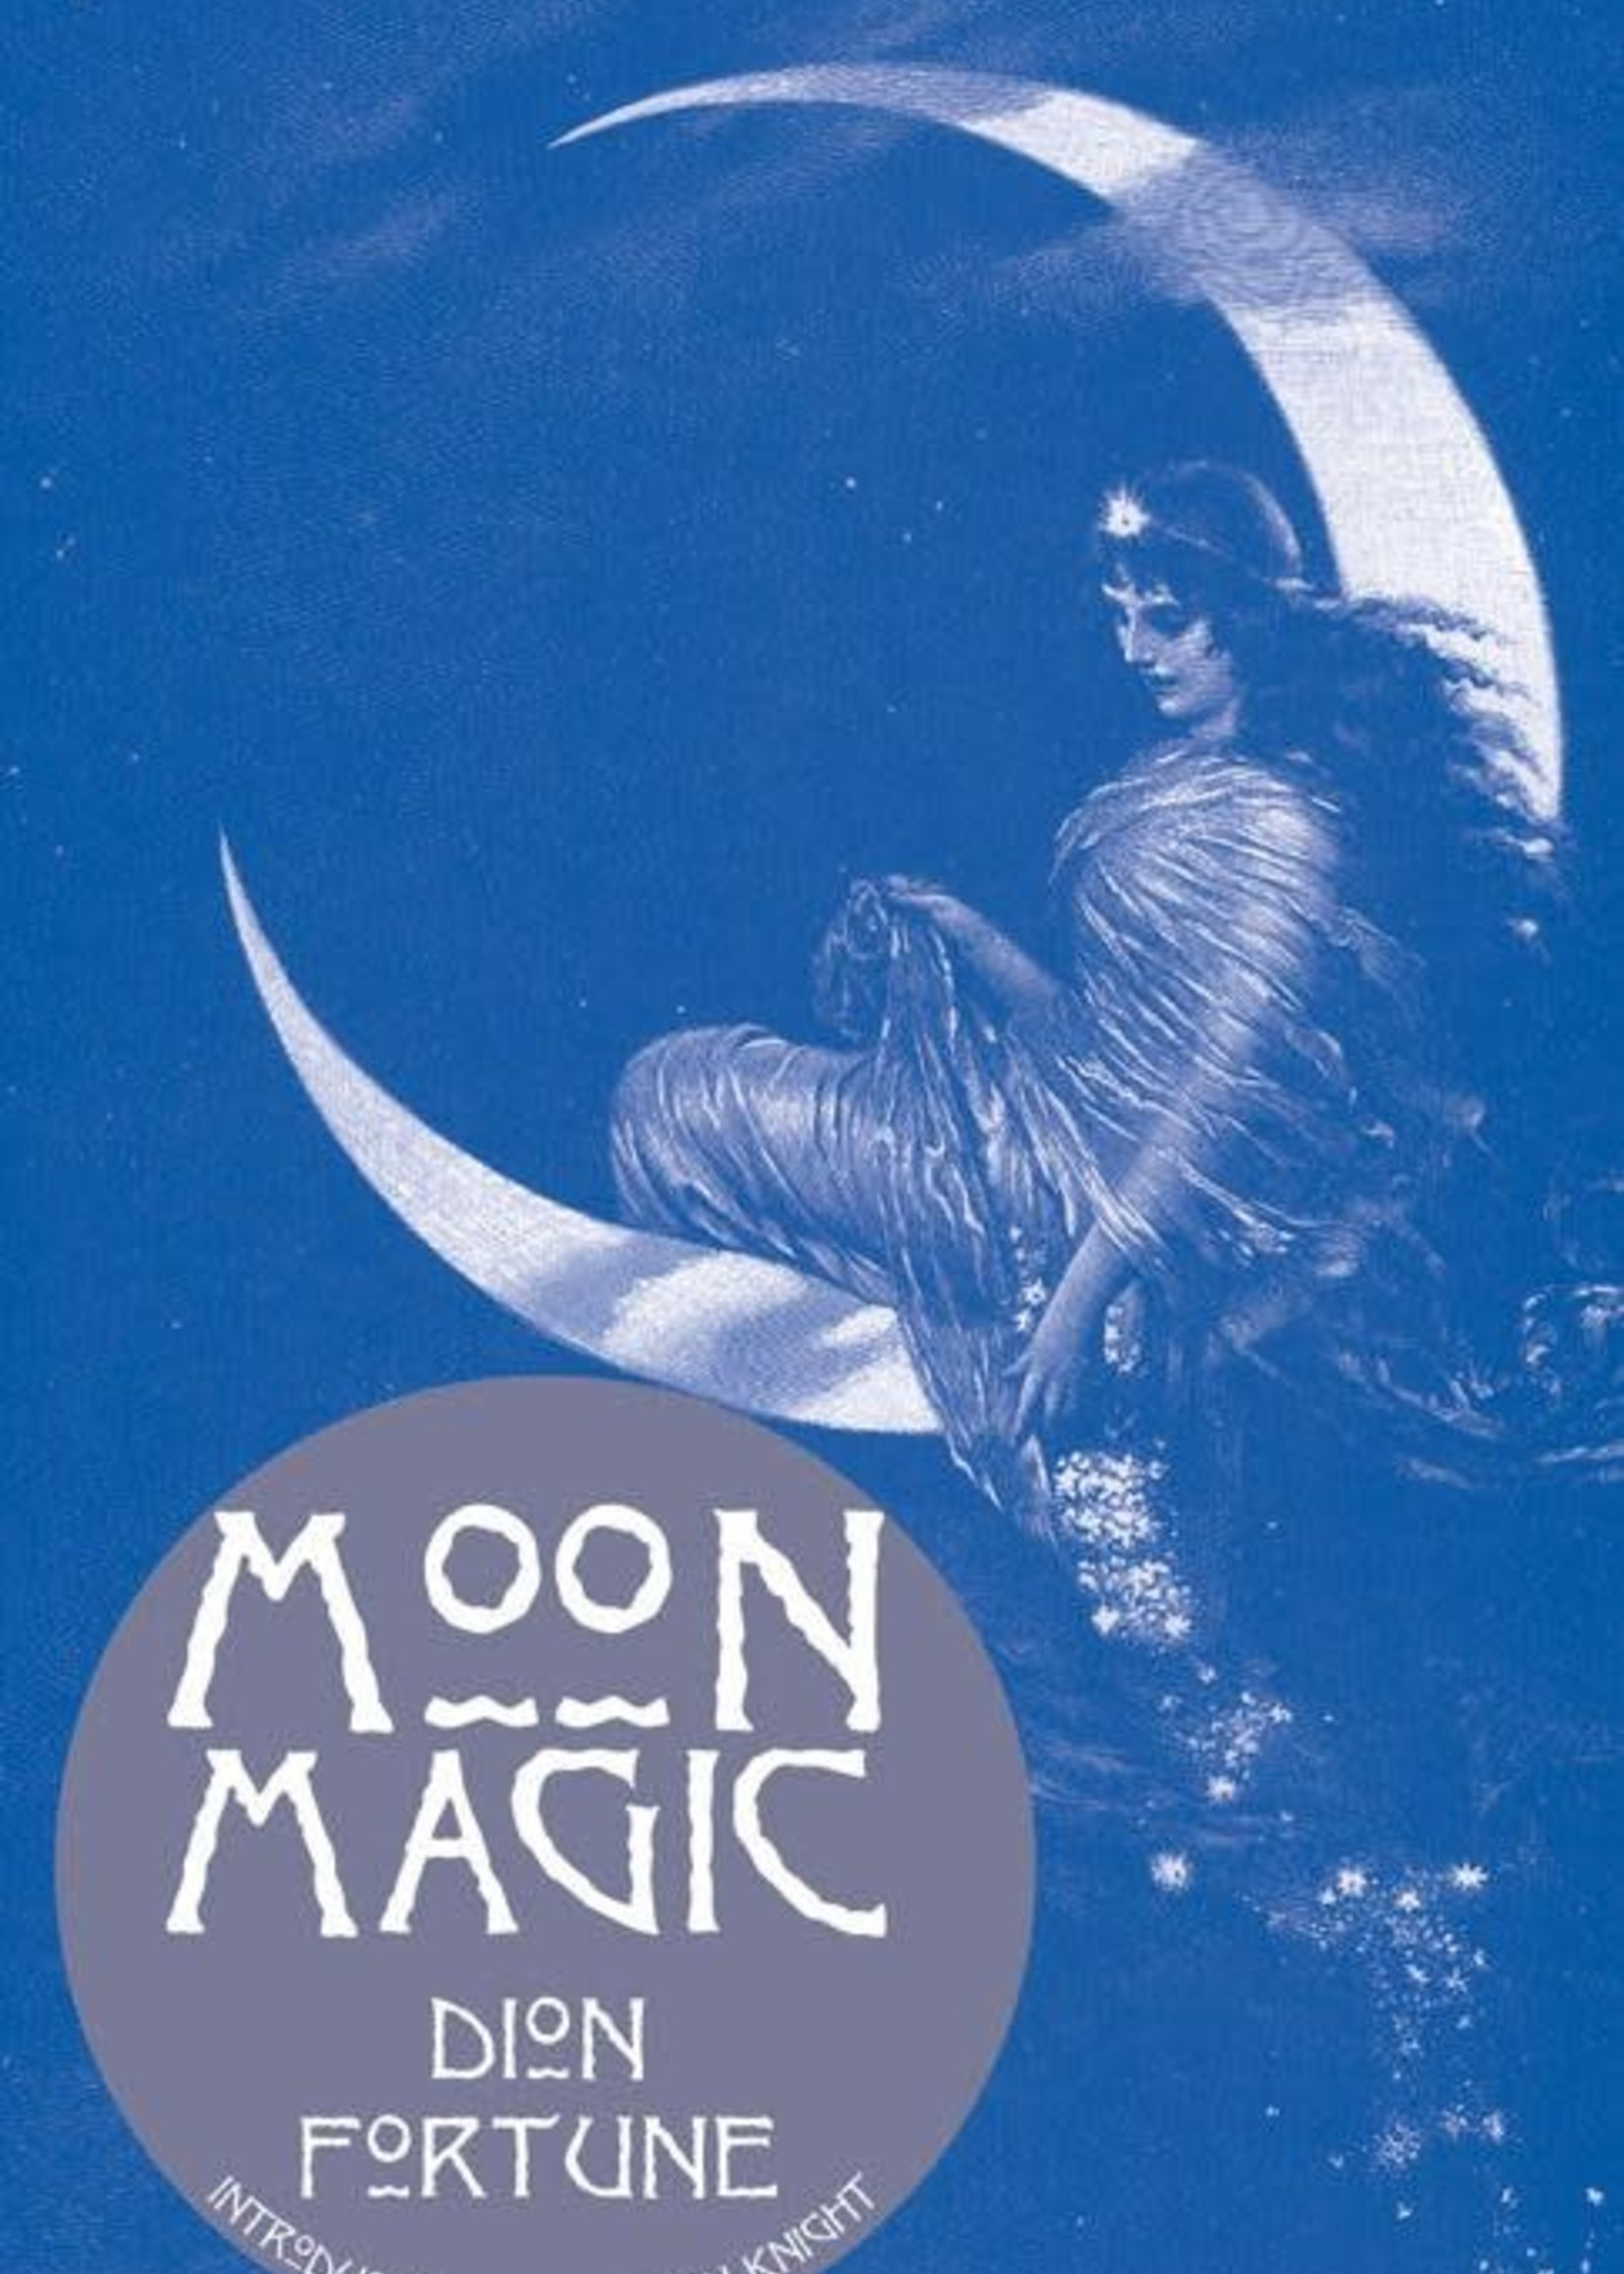 Moon Magic (Dion Fortune)